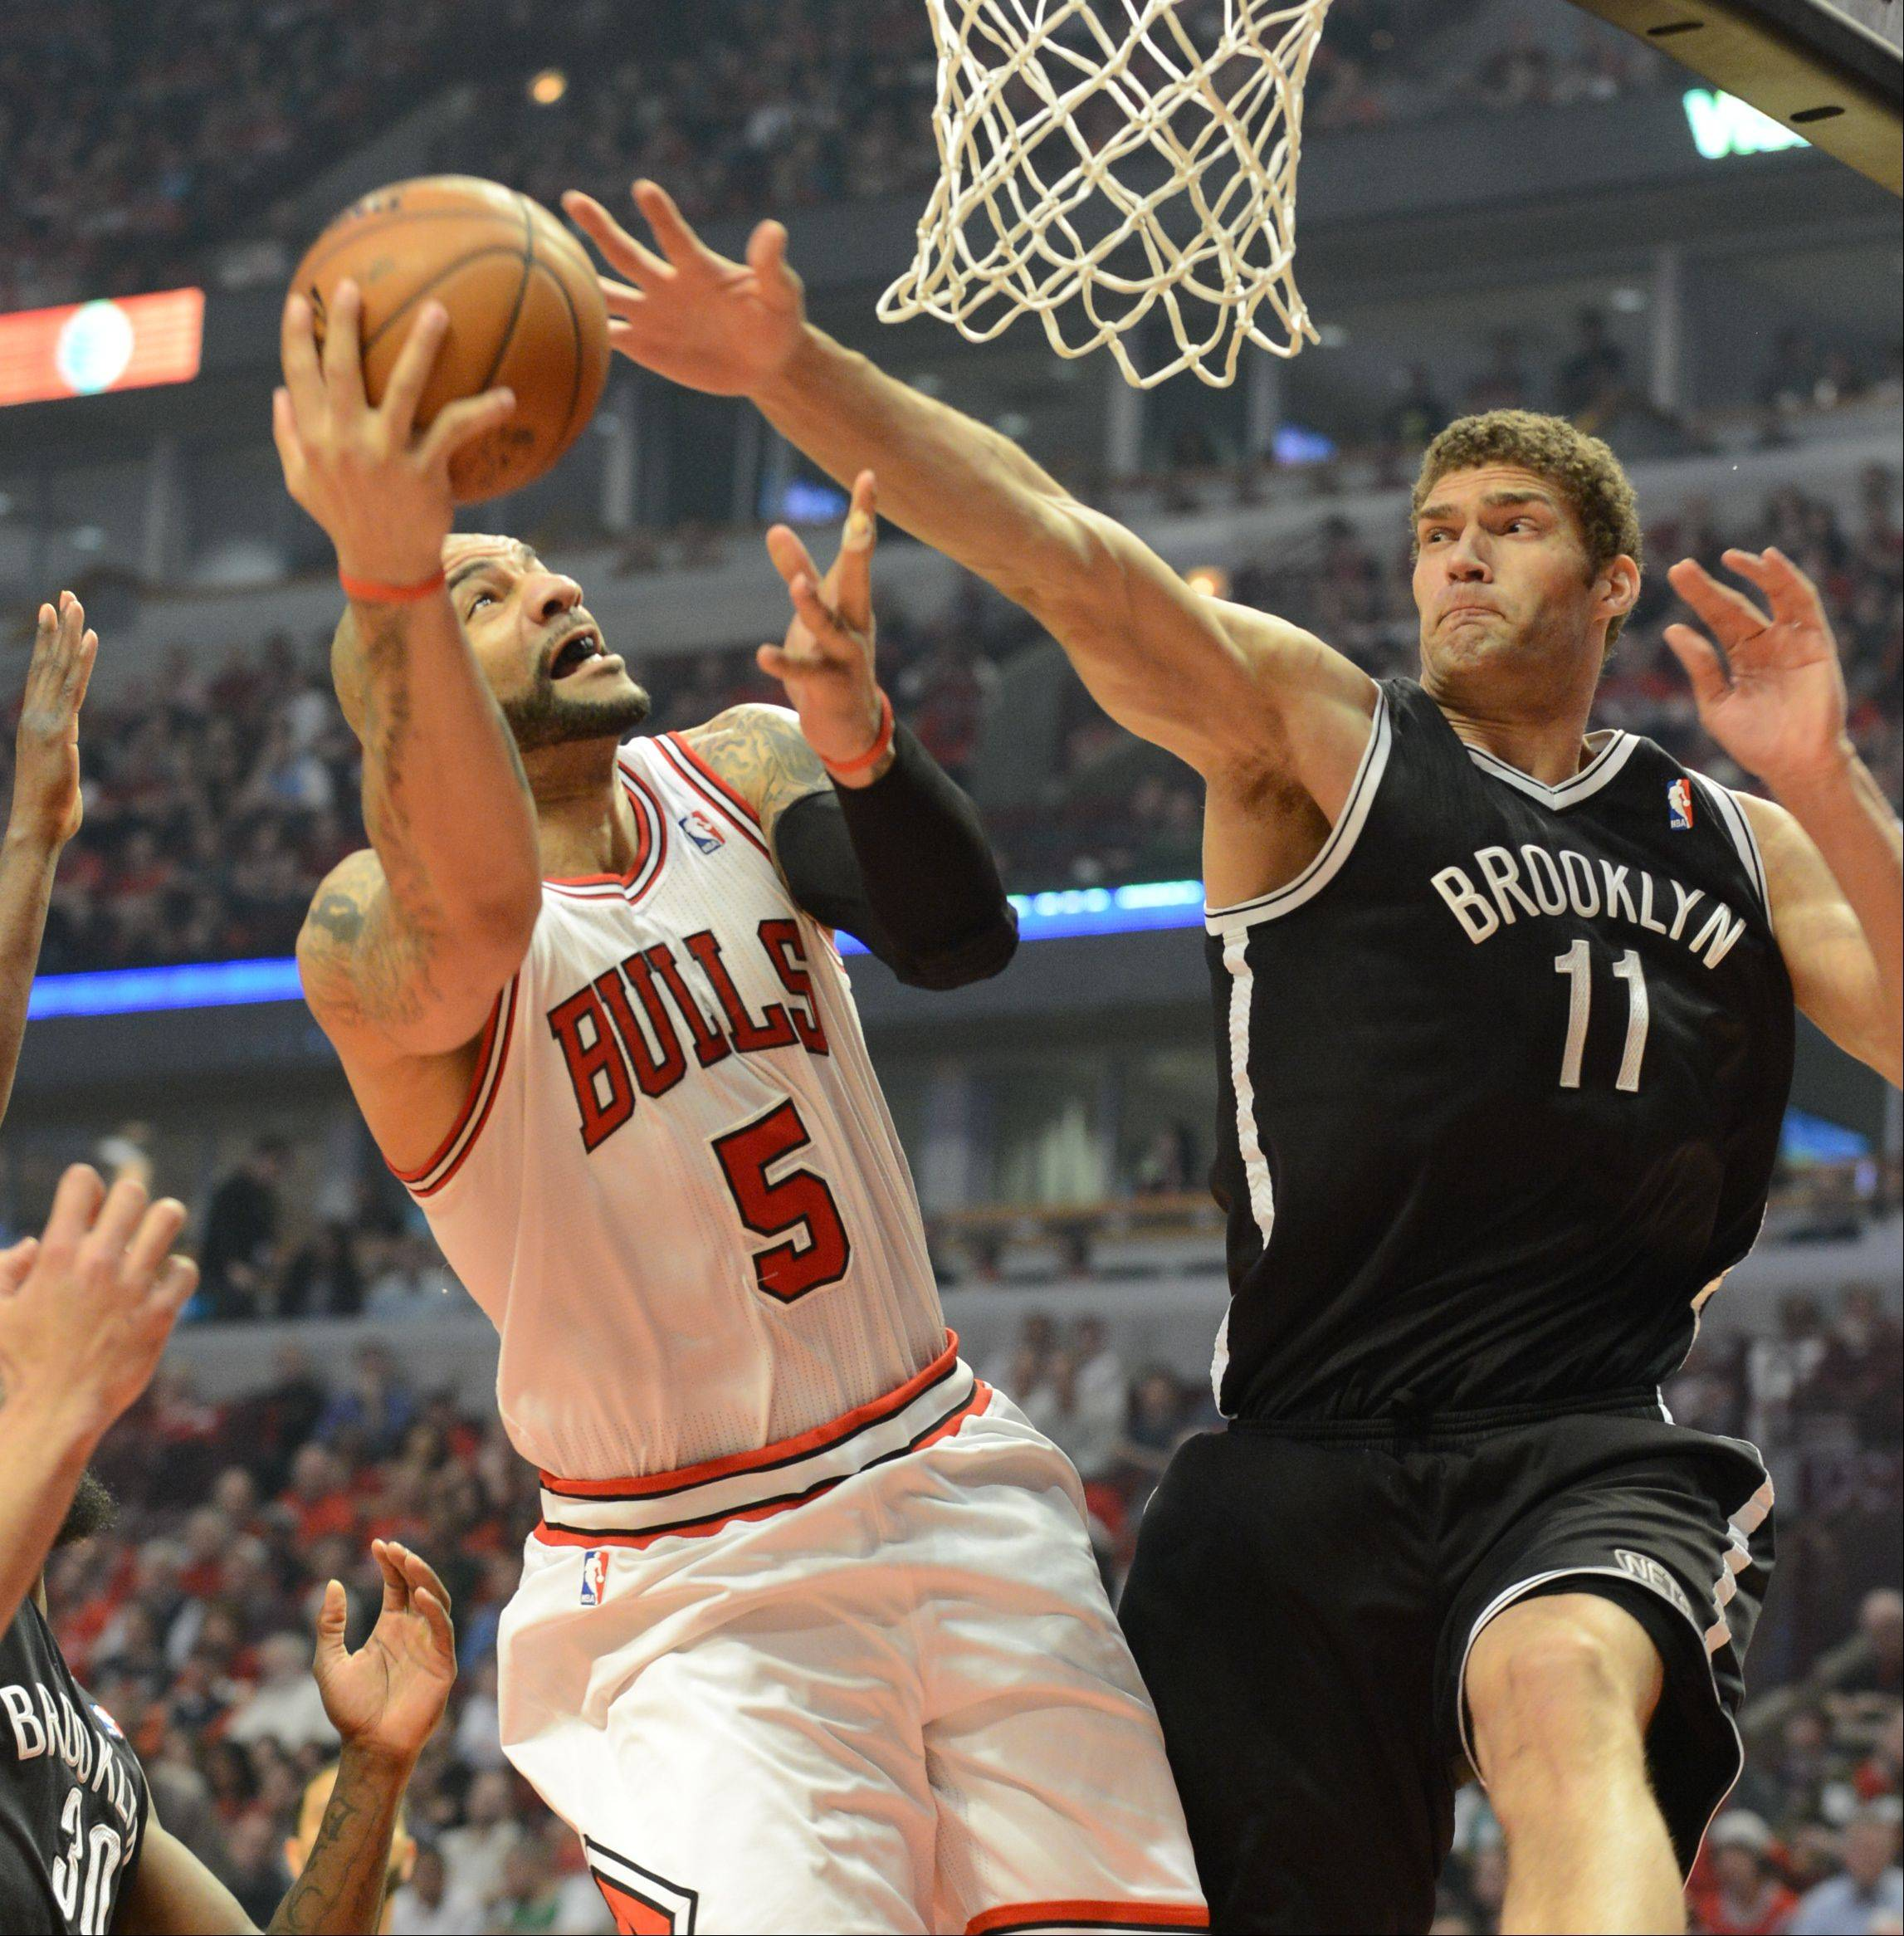 Carlos Boozer drives to the basket pressured by Brooklyn's Brook Lopez in the first half Saturday during game 4 of the first round playoff game against the Brooklyn Nets at the United Center. The Bulls won in triple overtime 142 - 134.